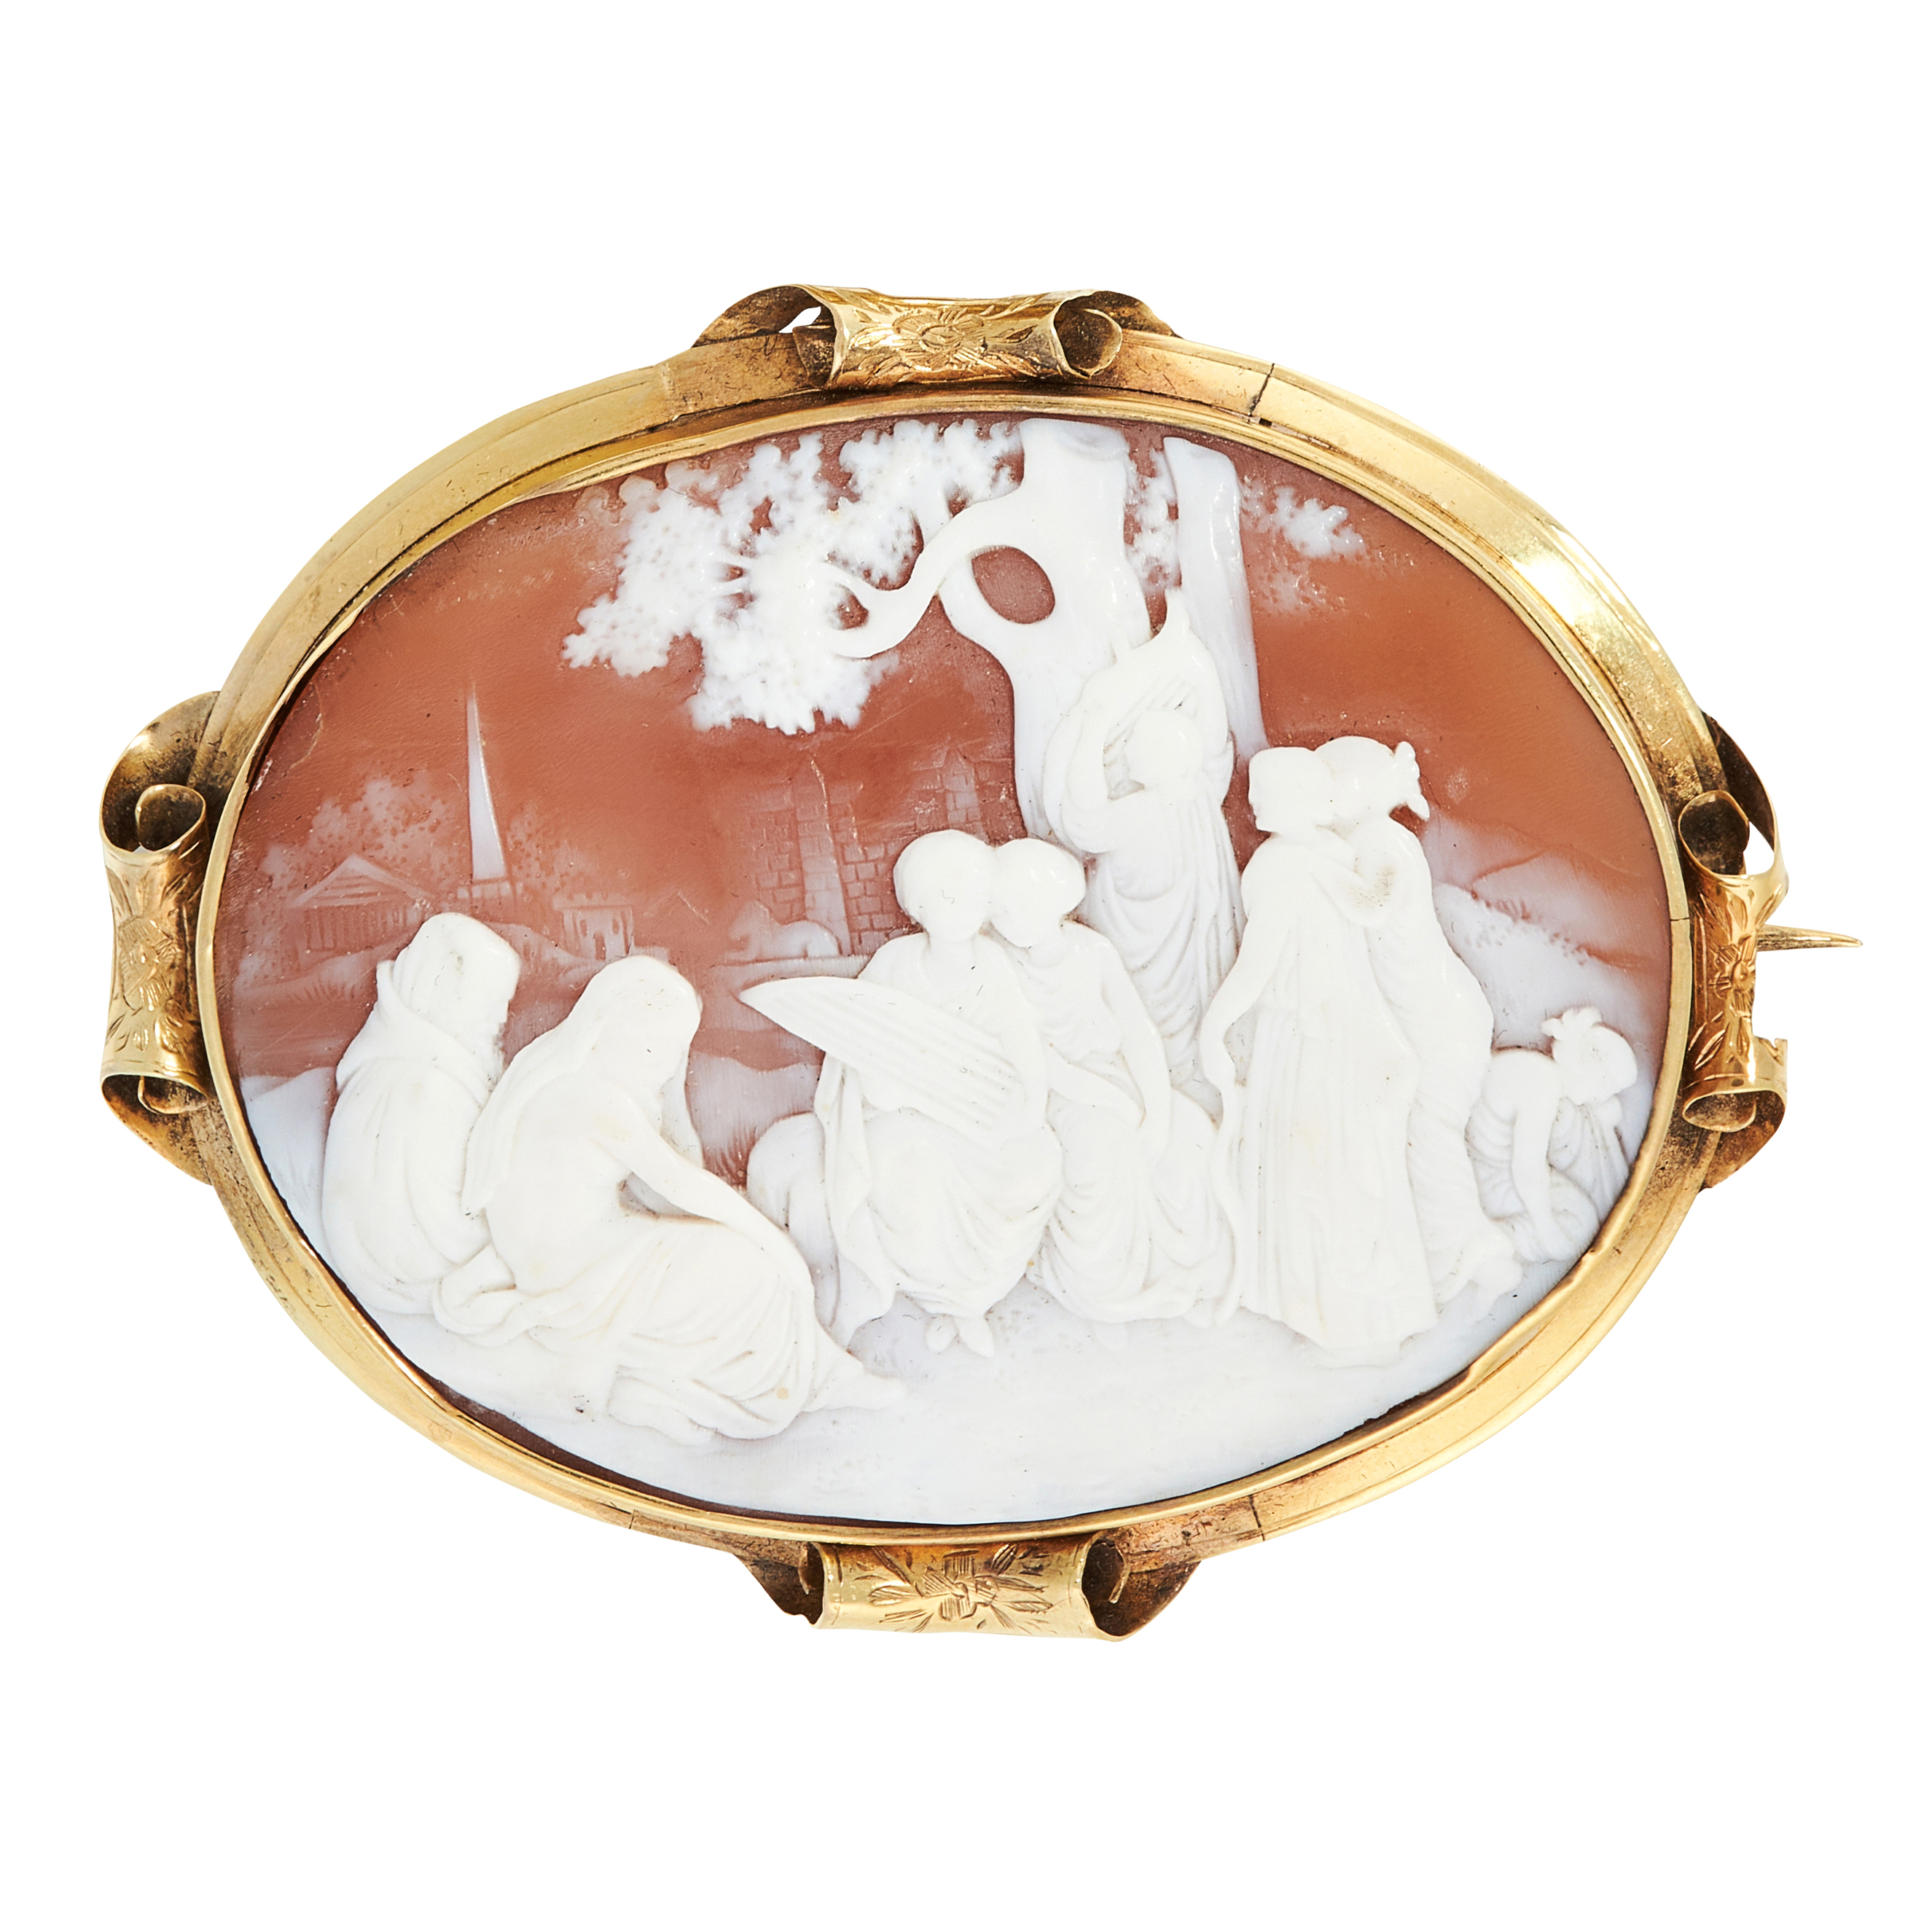 AN ANTIQUE CAMEO BROOCH set with an oval carved shell cameo depicting a scene of figures beneath a